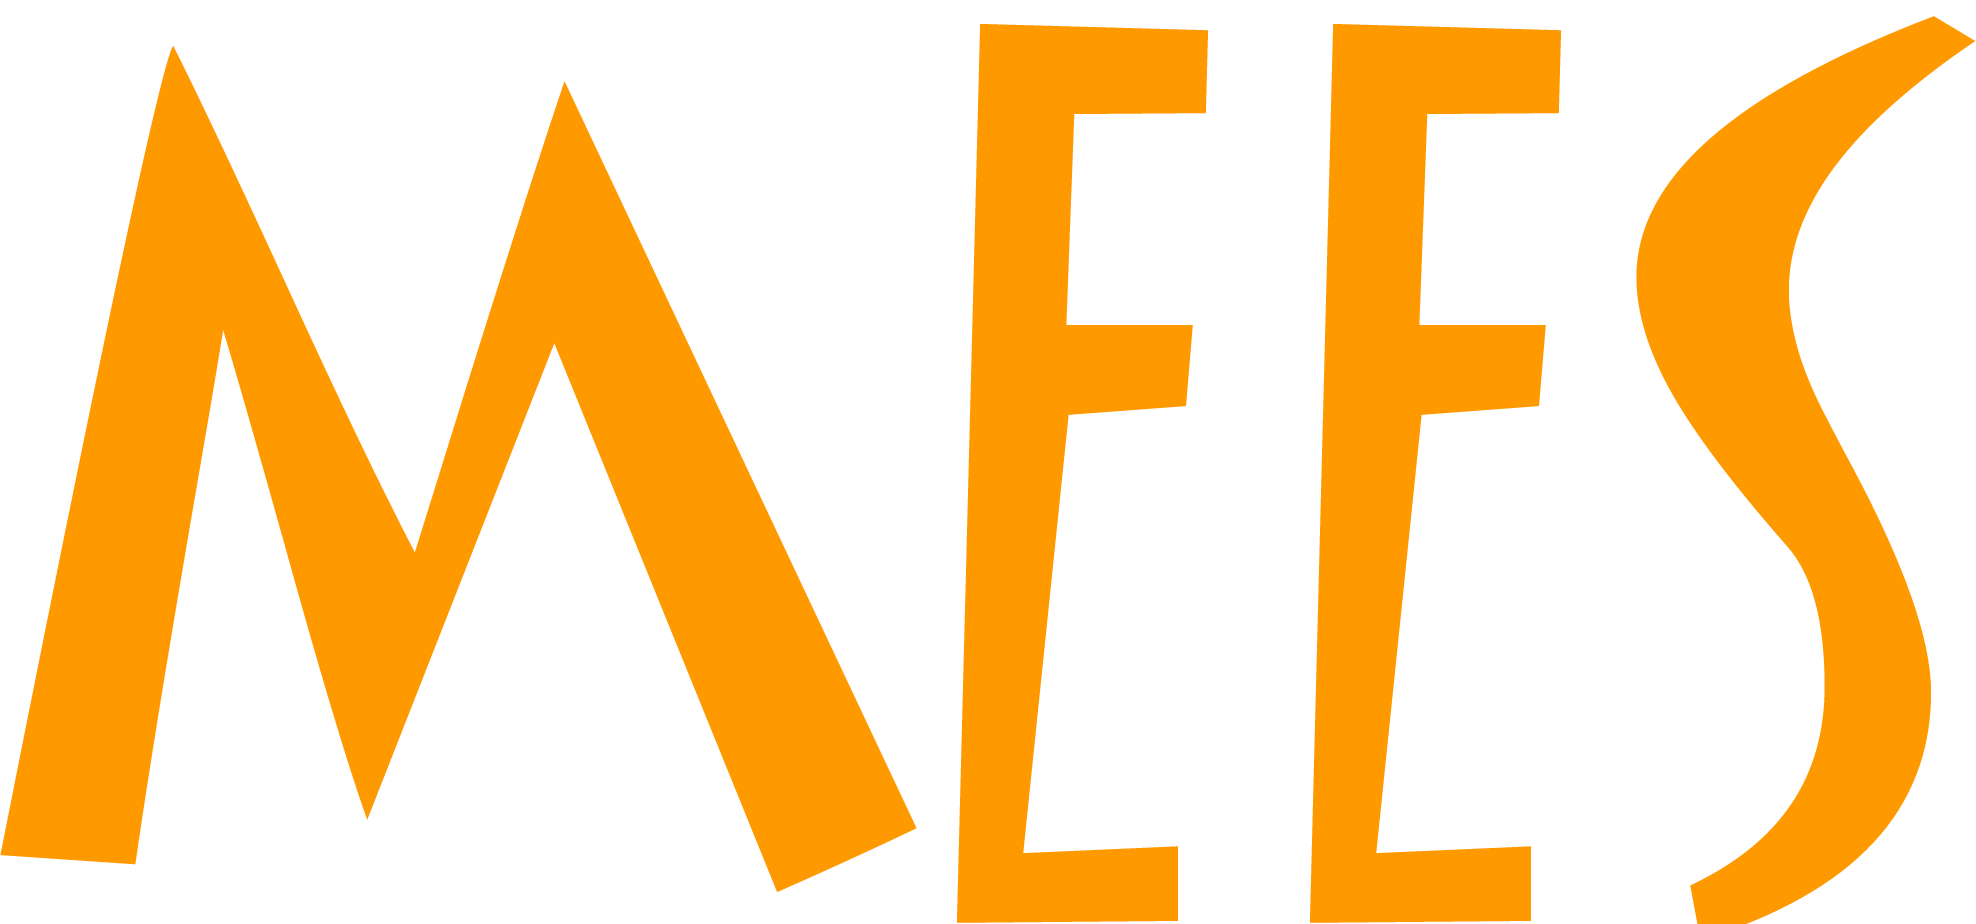 MEES.logo